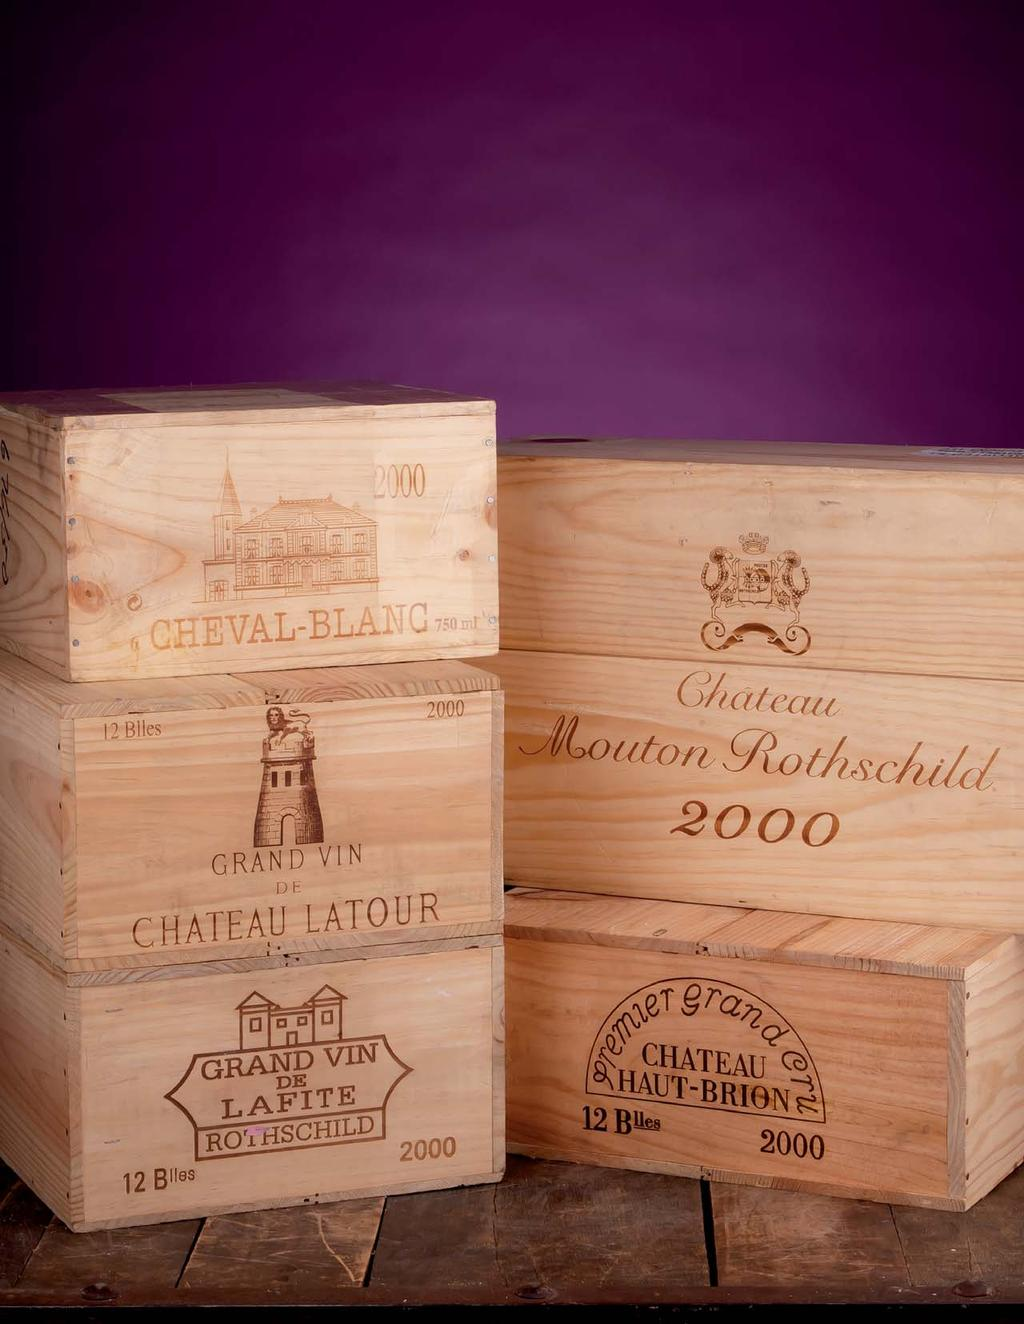 FINE BORDEAUX Available 24 Hours a Day on our Outstanding Retail Website Exceptional Service from our Team of Experts State of the Art Website with Real-Time Inventory In Stock, Fully Inspected and